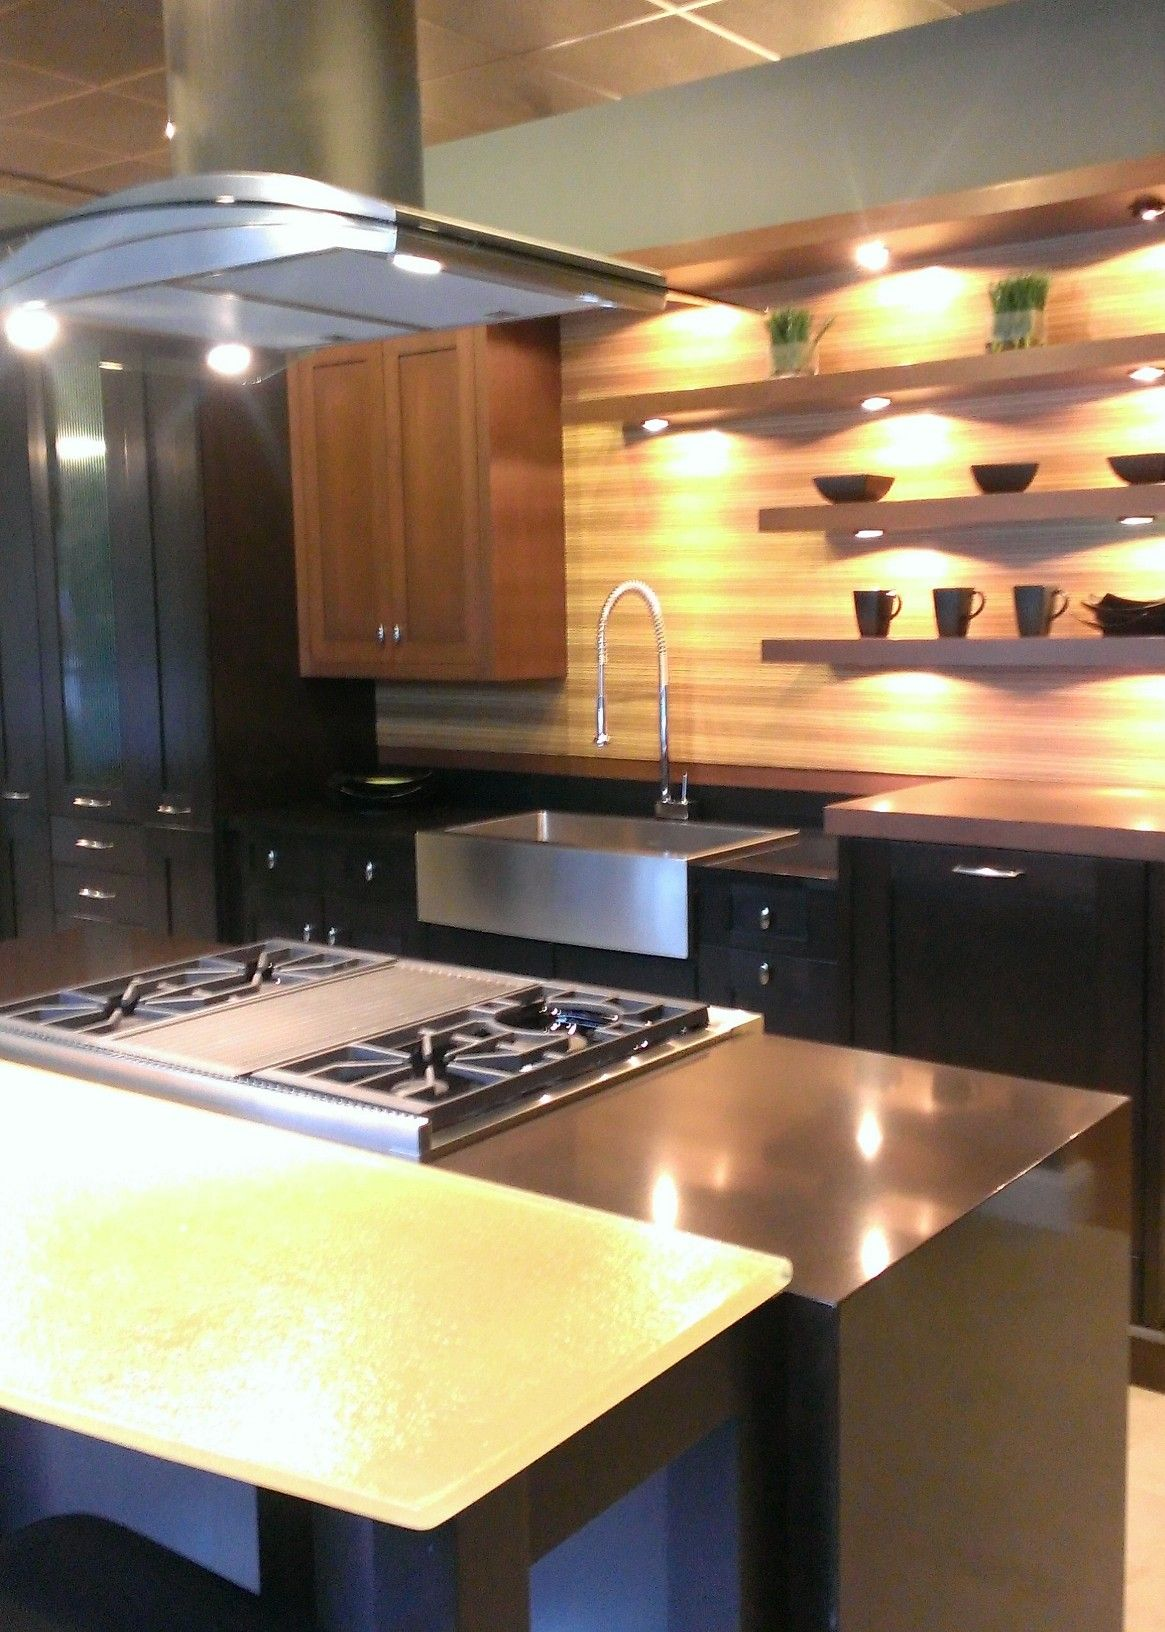 Modern Kitchen Design With Open Shelving | Kenwood Kitchens In Annapolis,  Maryland | Stainless Steel